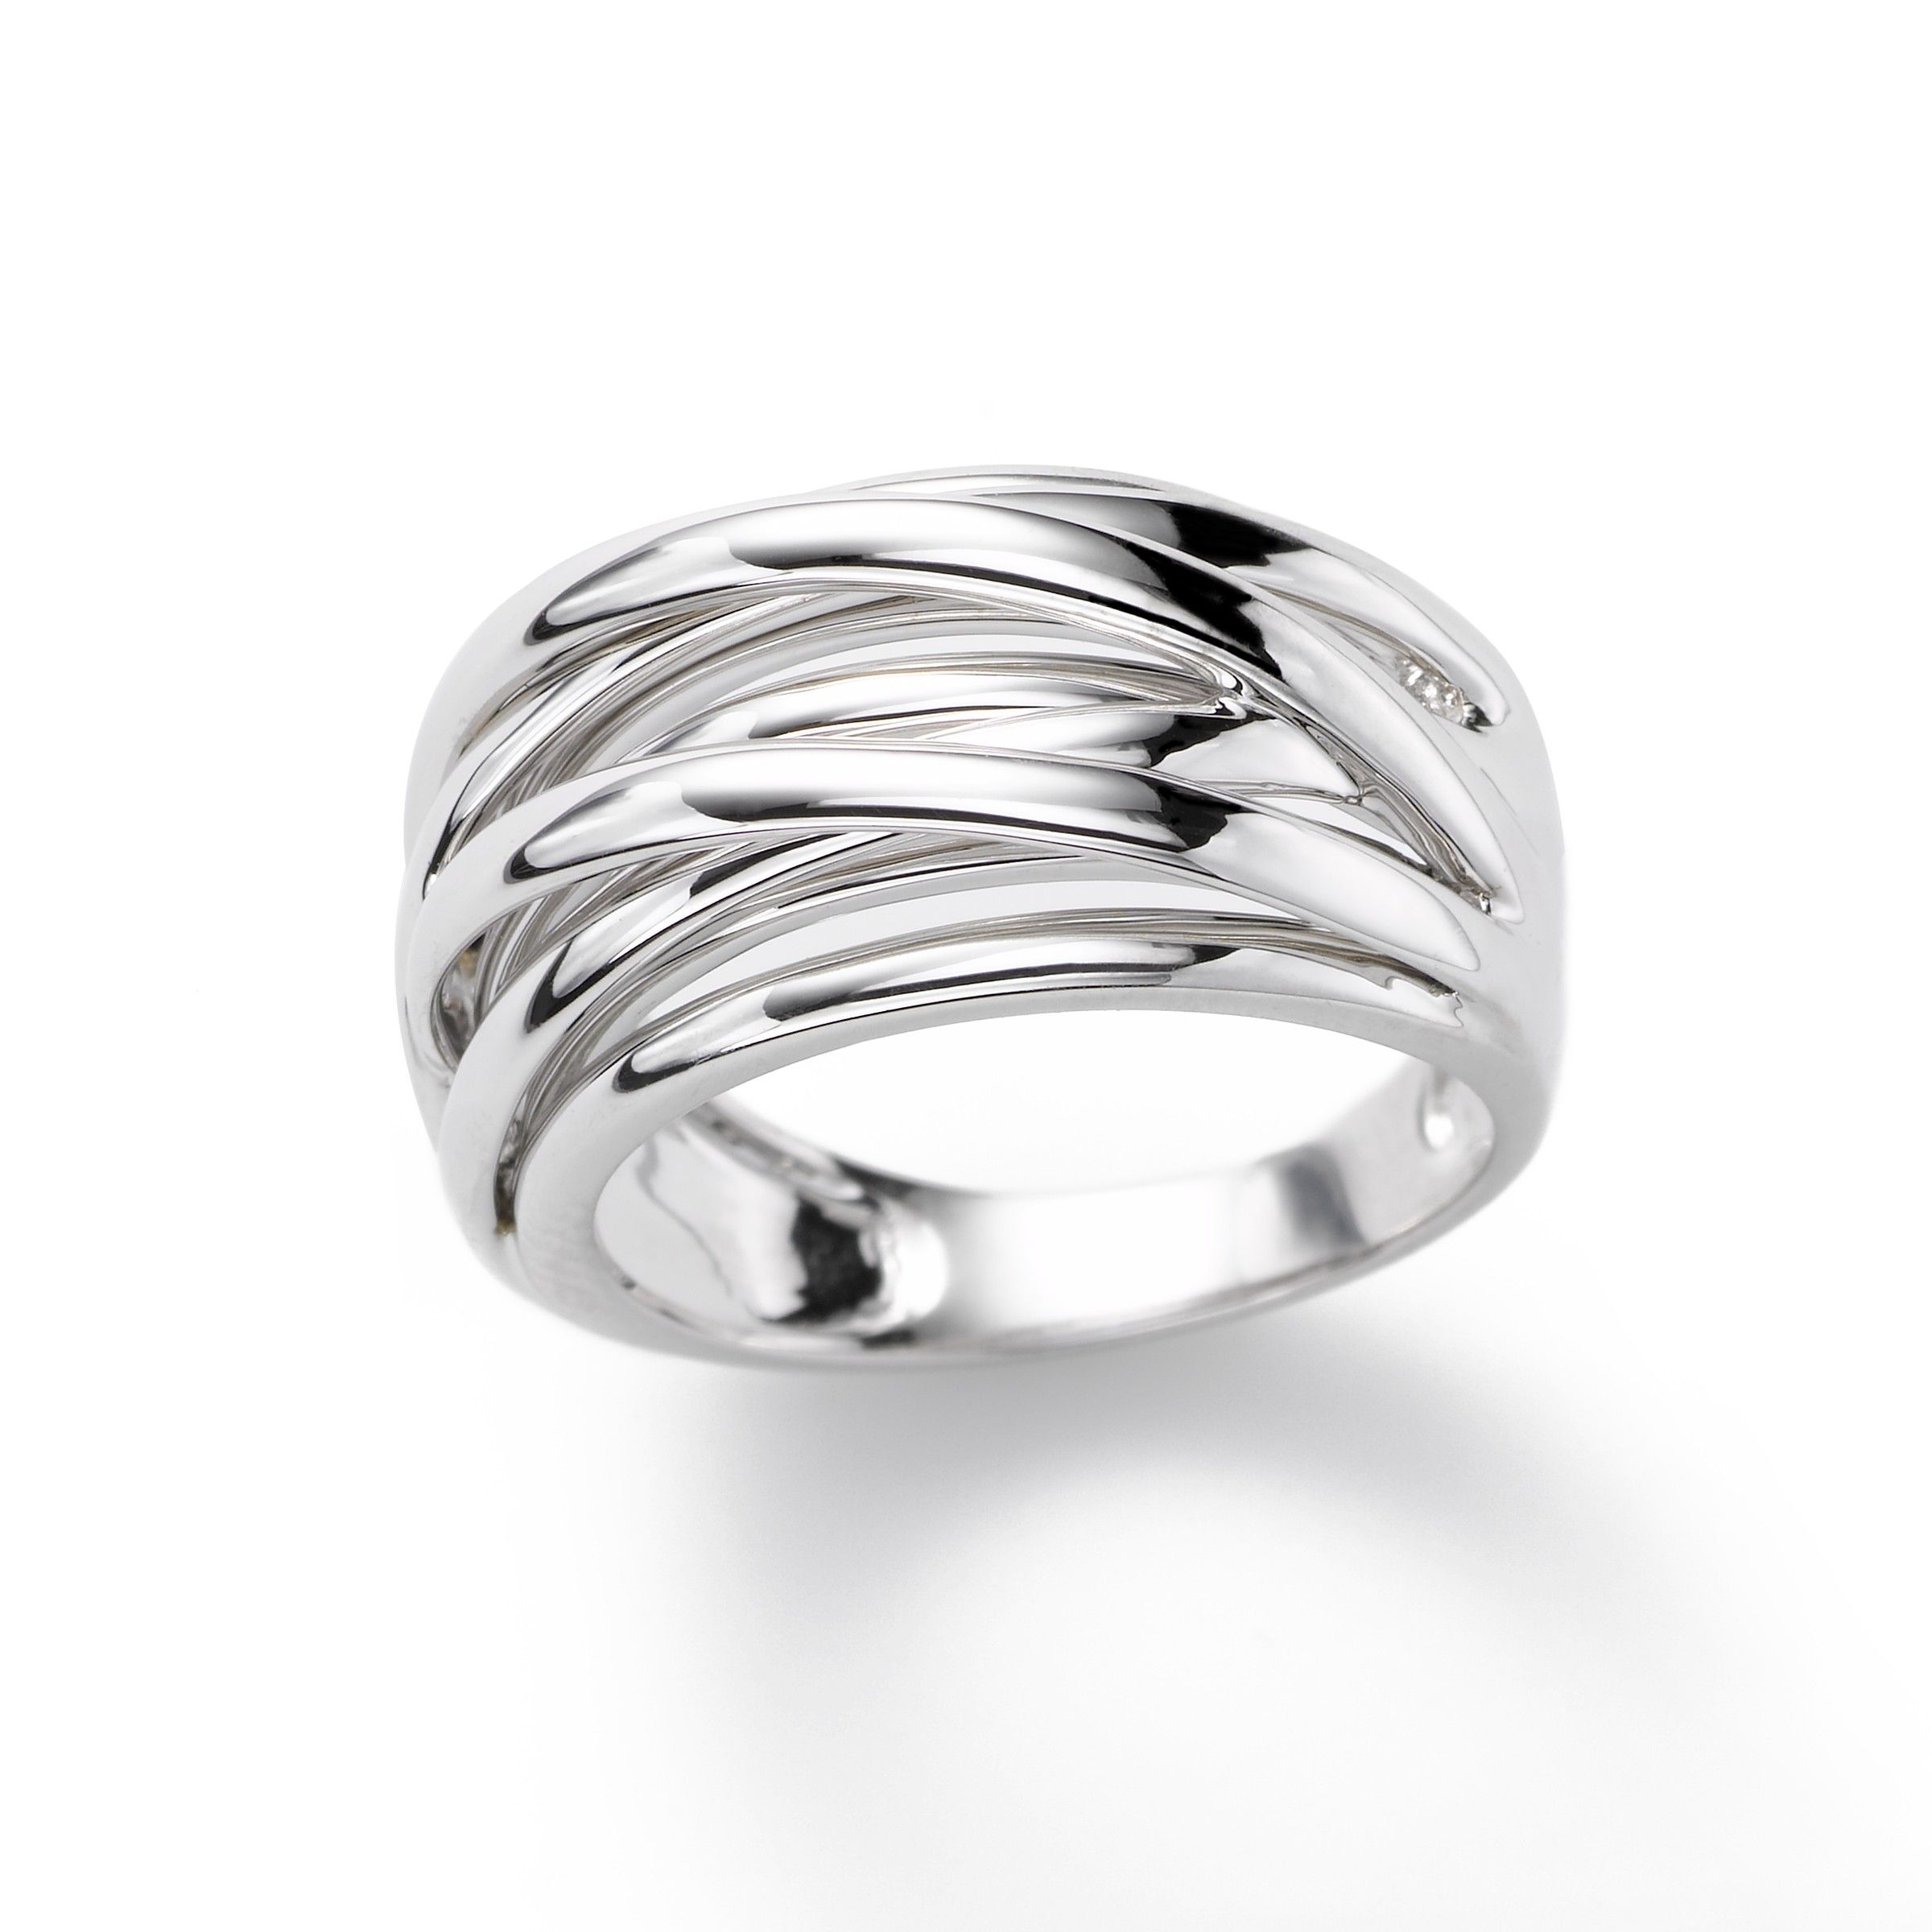 Inspirational Womens Wedding Rings Pictures